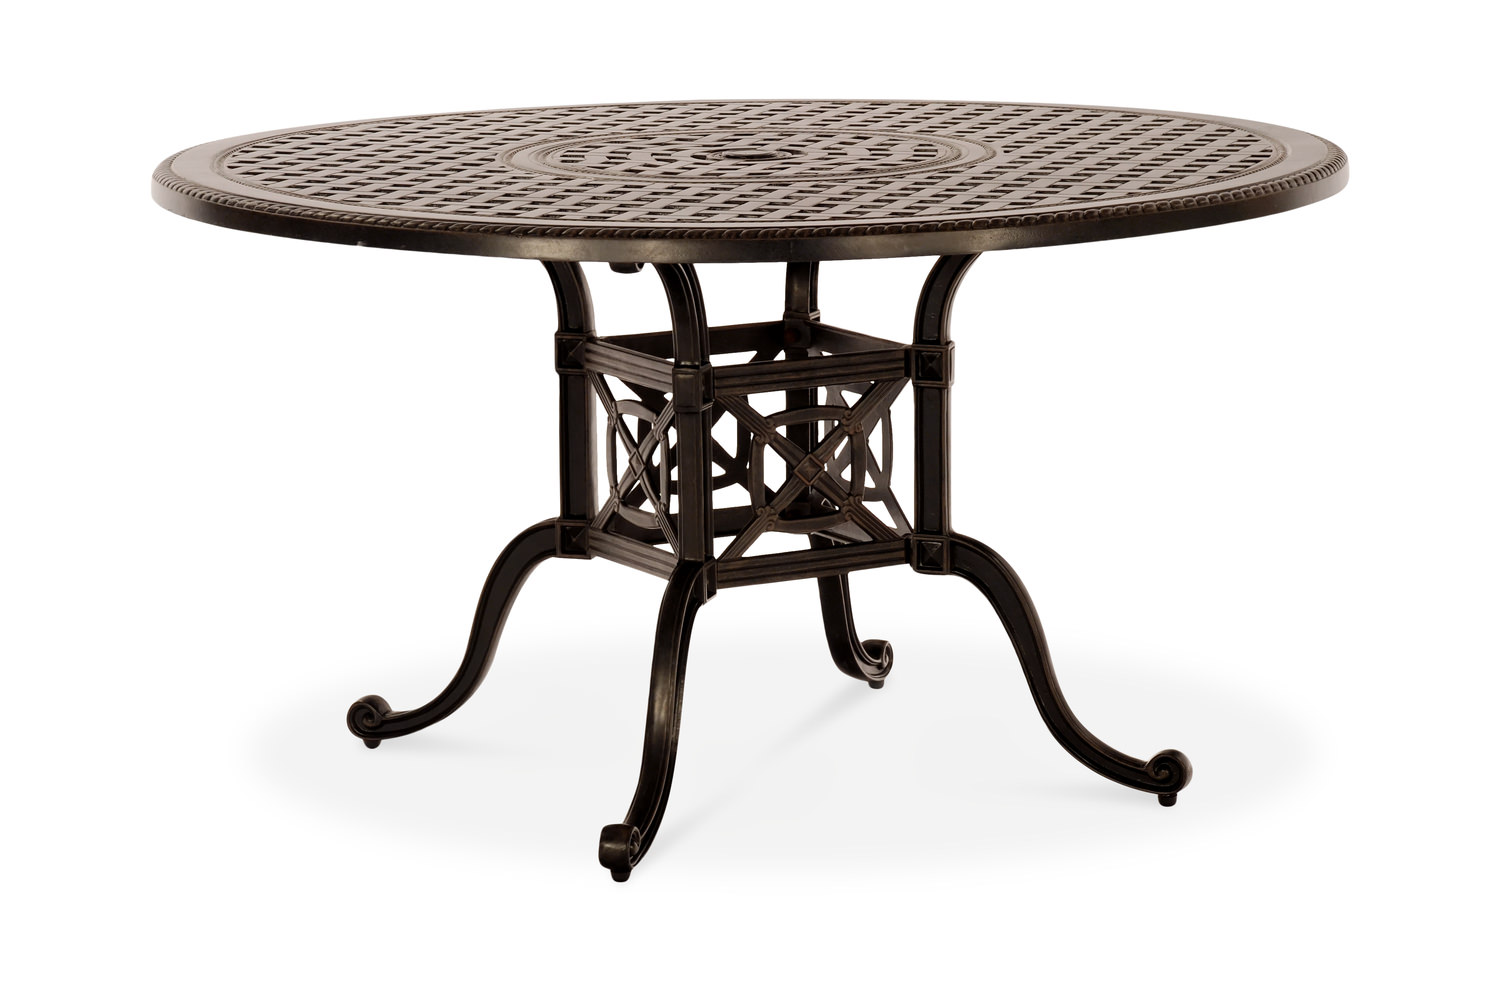 Grand terrace 54 round dining table cast by gensun for Outdoor dining sets for 6 round table